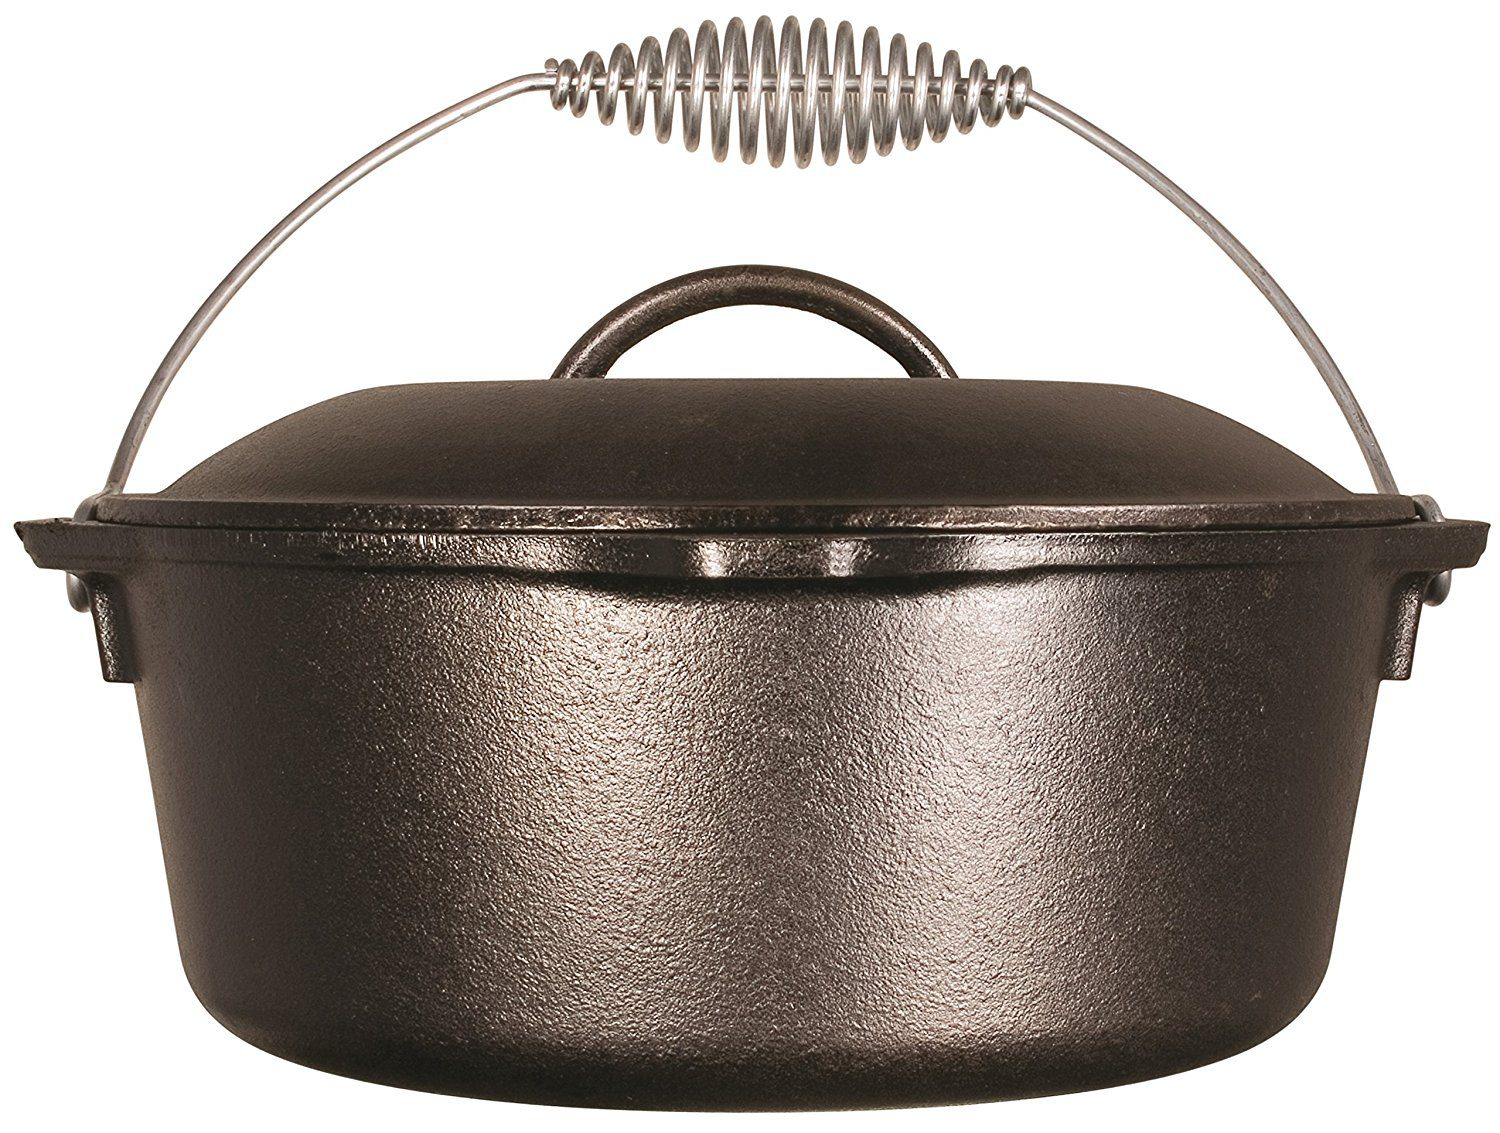 Lodge Dutch Oven – For Camping, Kamado, Frying, and More